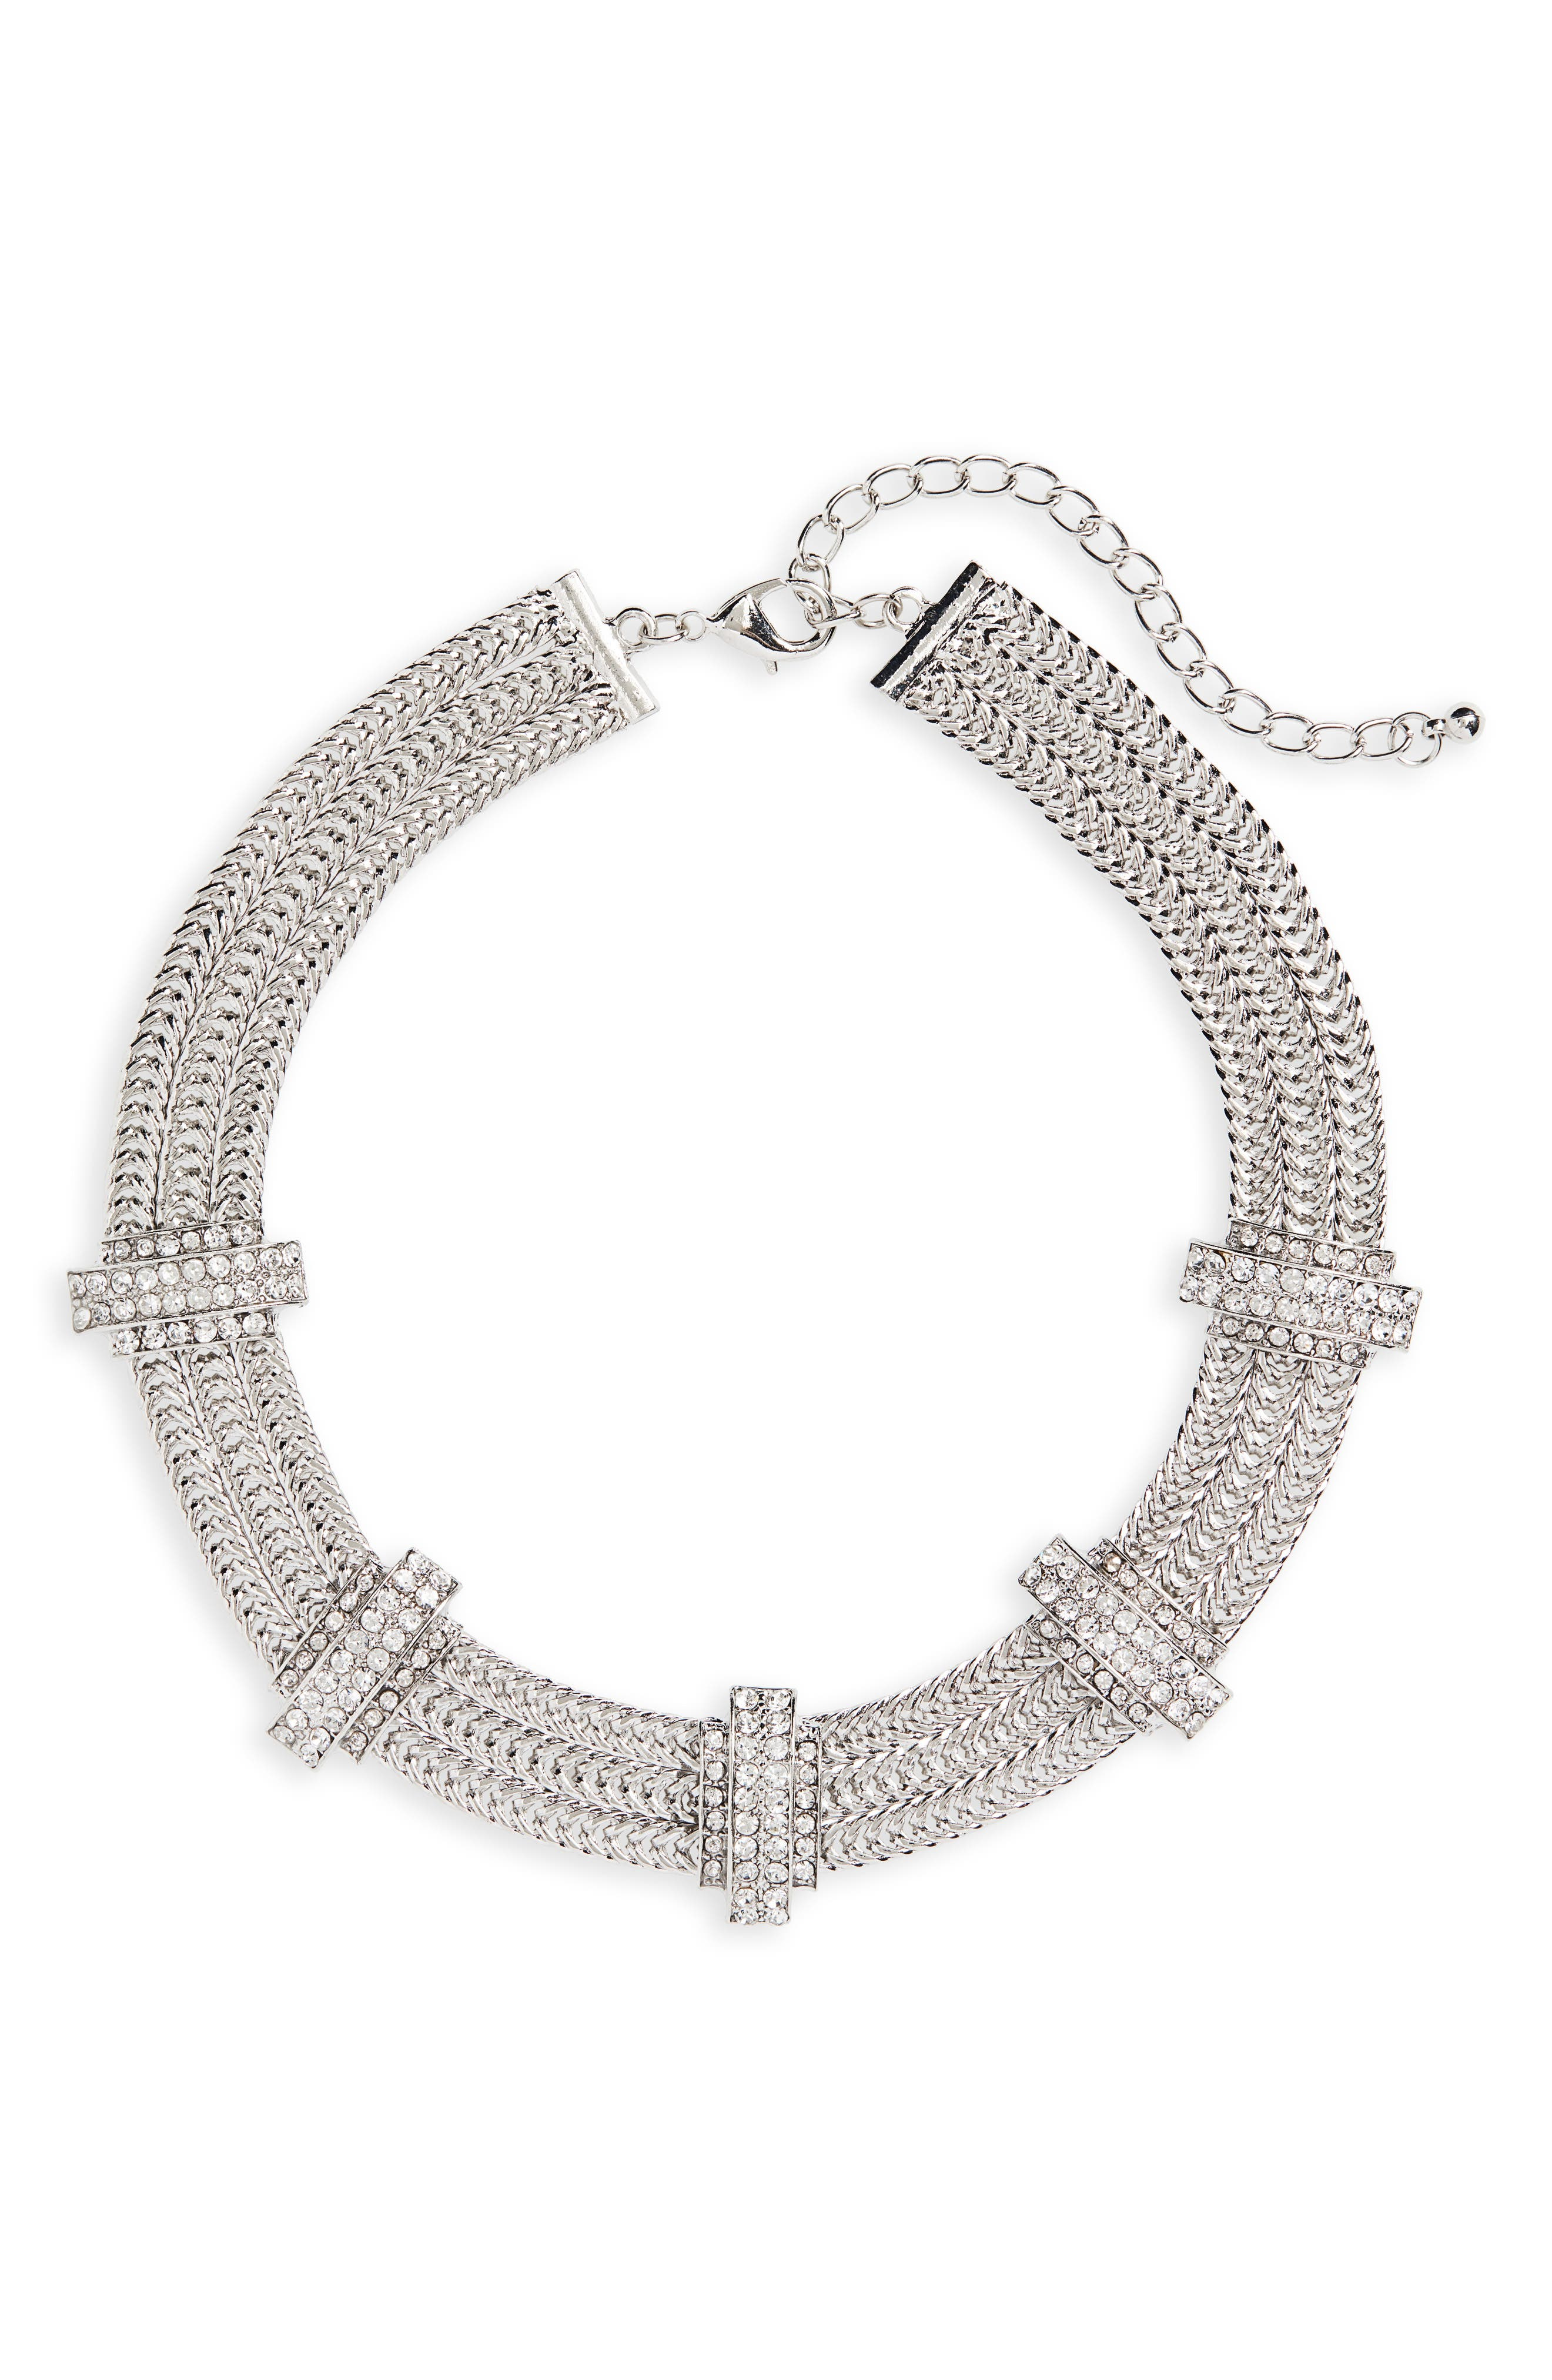 Crystal Statement Collar Necklace,                             Main thumbnail 1, color,                             SILVER/ CRYSTAL